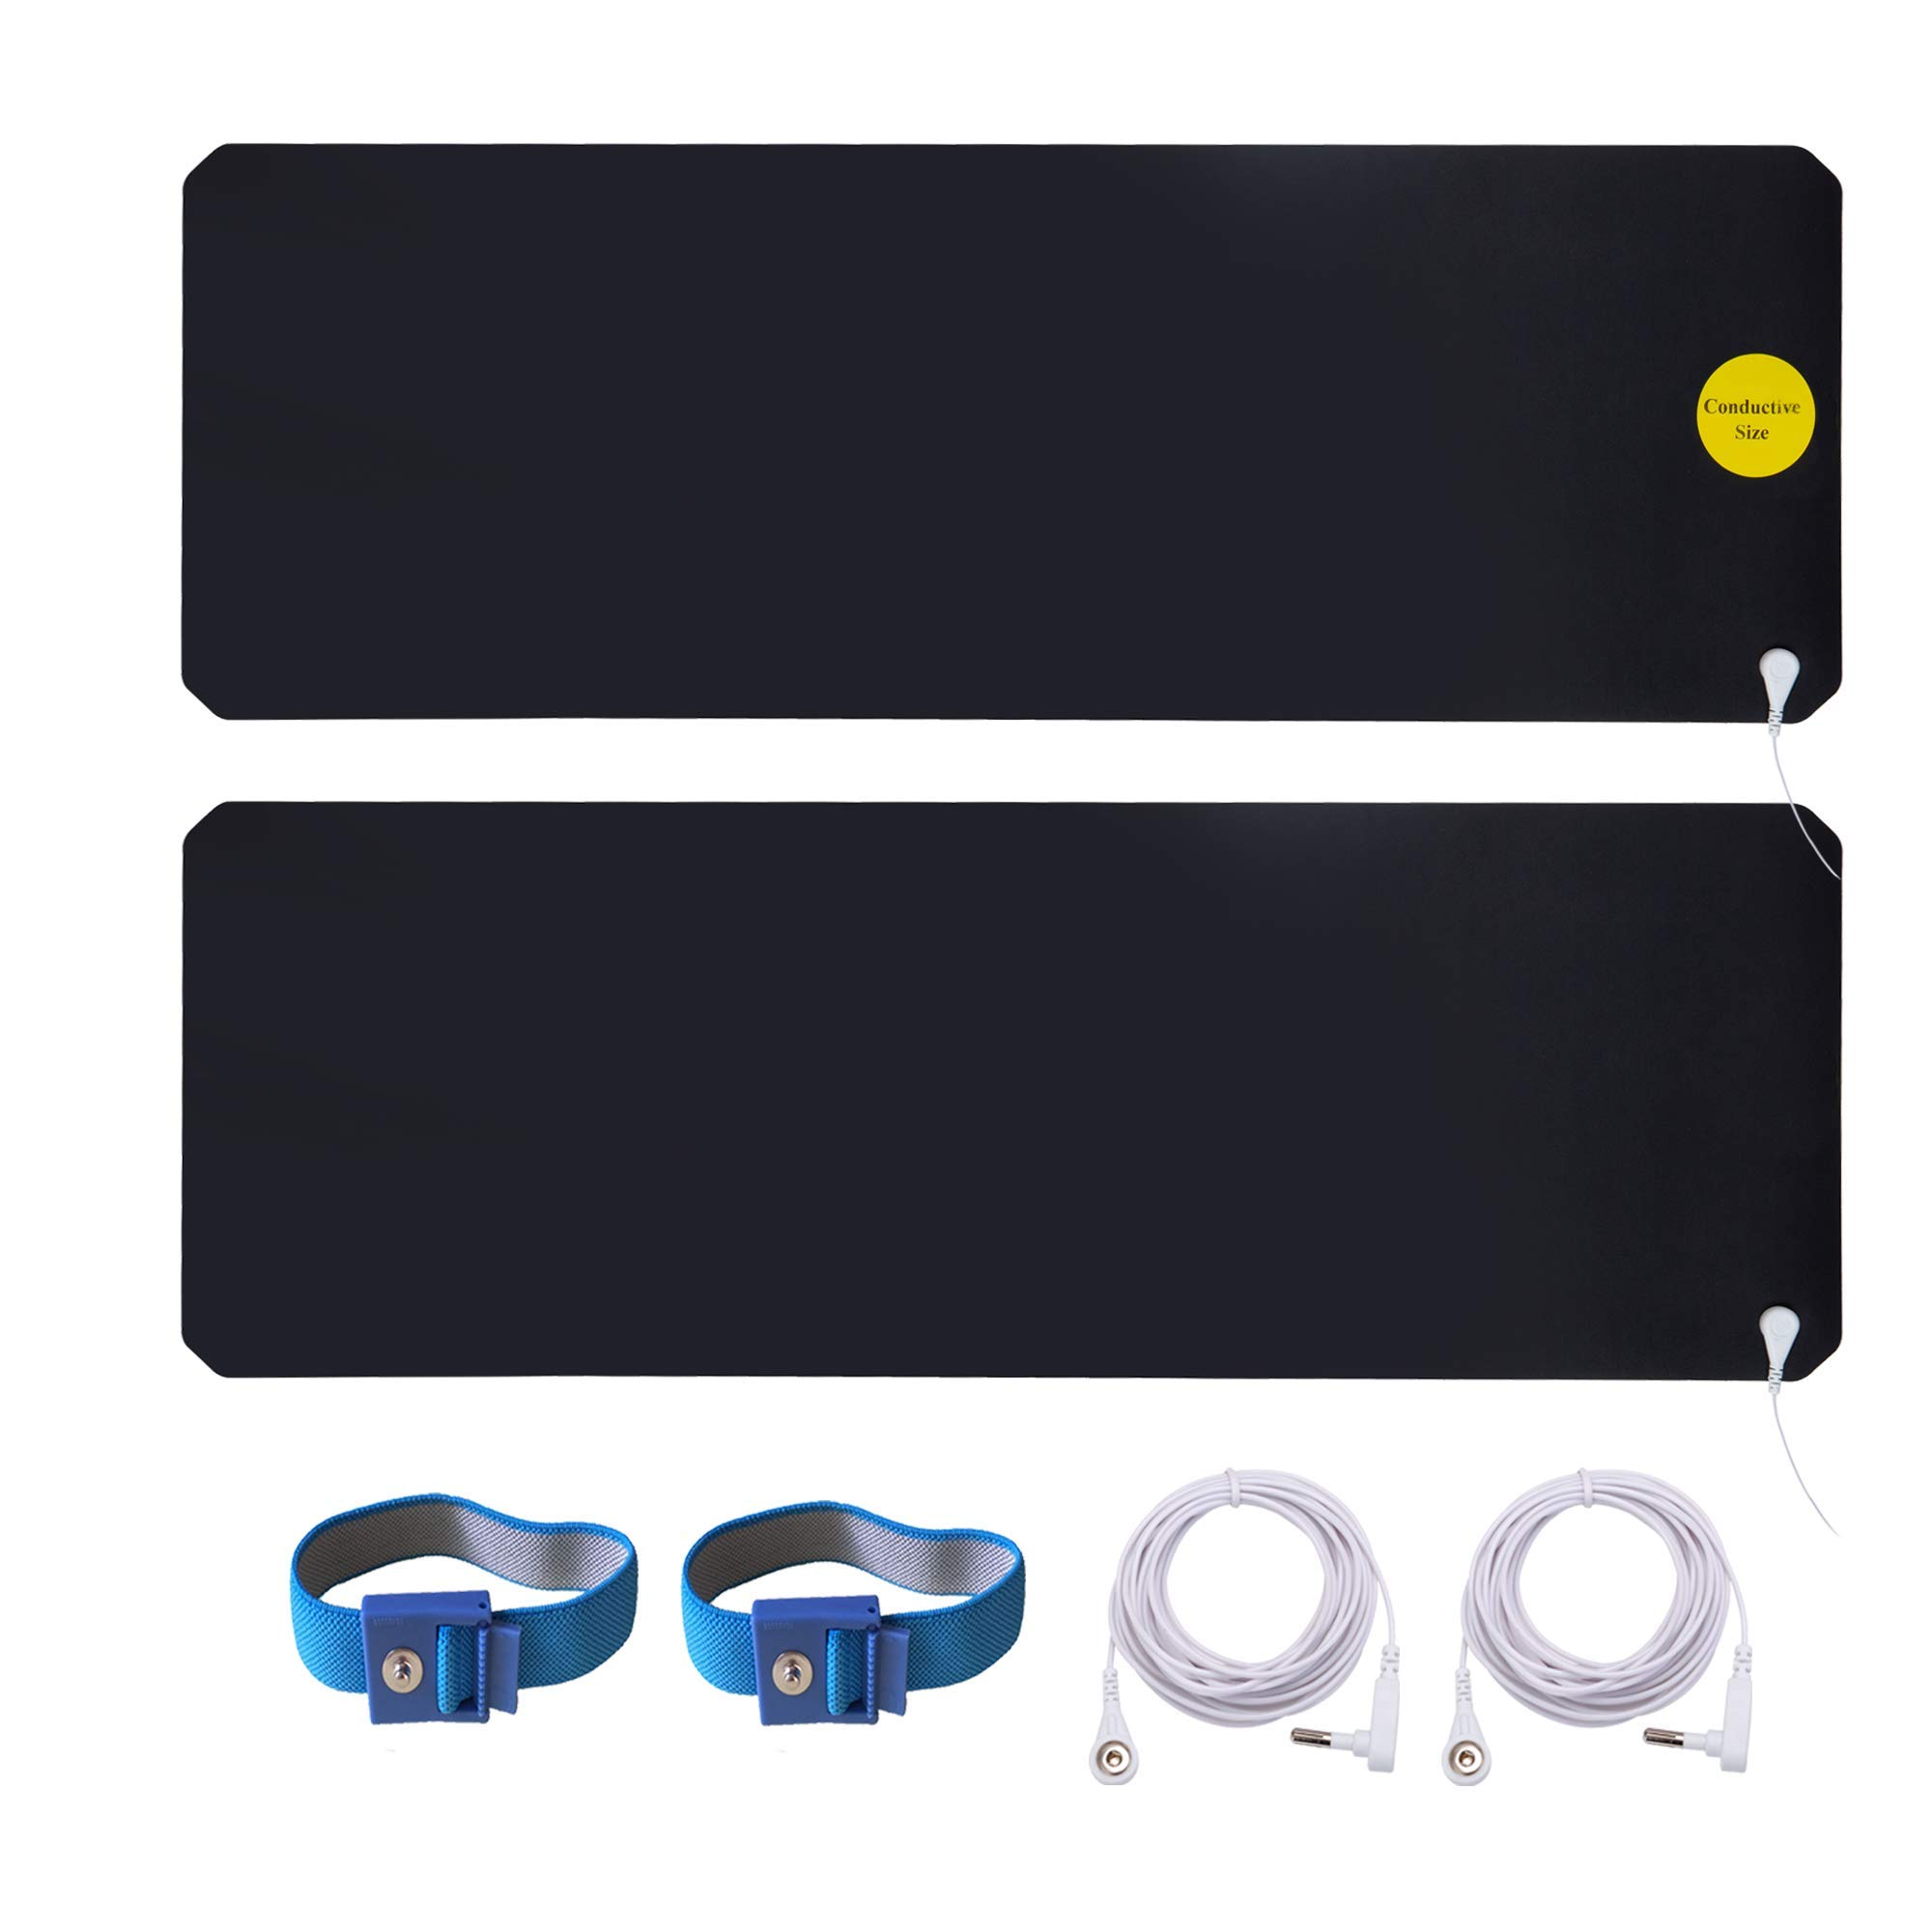 LandKissing Grounding Mats Kit (2sets) for Healthy Earth Energy with 2 Grounding Wrist Band and 2 Straight Cords